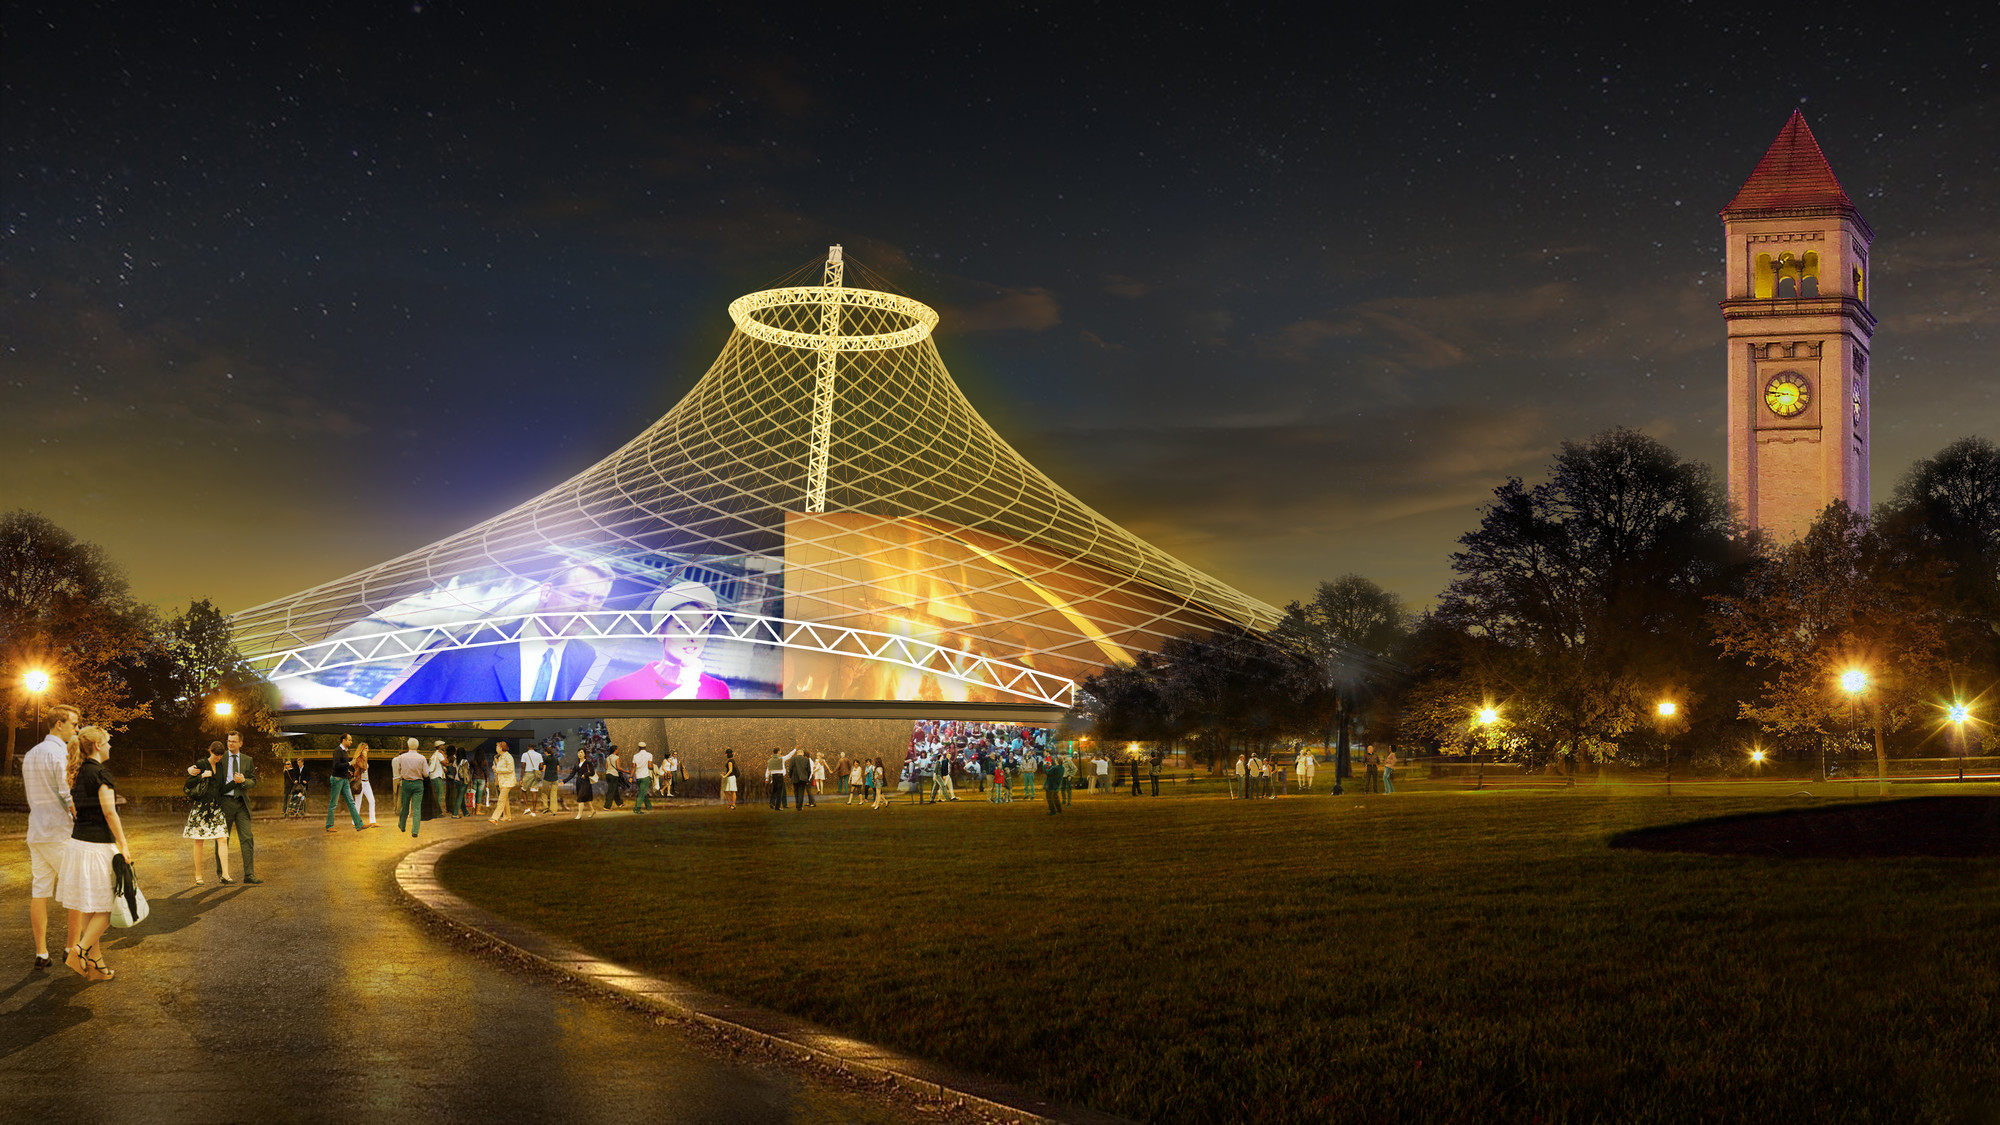 Olson Kundig Architects Reinvents Site of Expo '74 World's Fair for 40th Anniversary, Concept design for reuse of U.S. Federal Pavilion. Image © Olson Kundig Architects